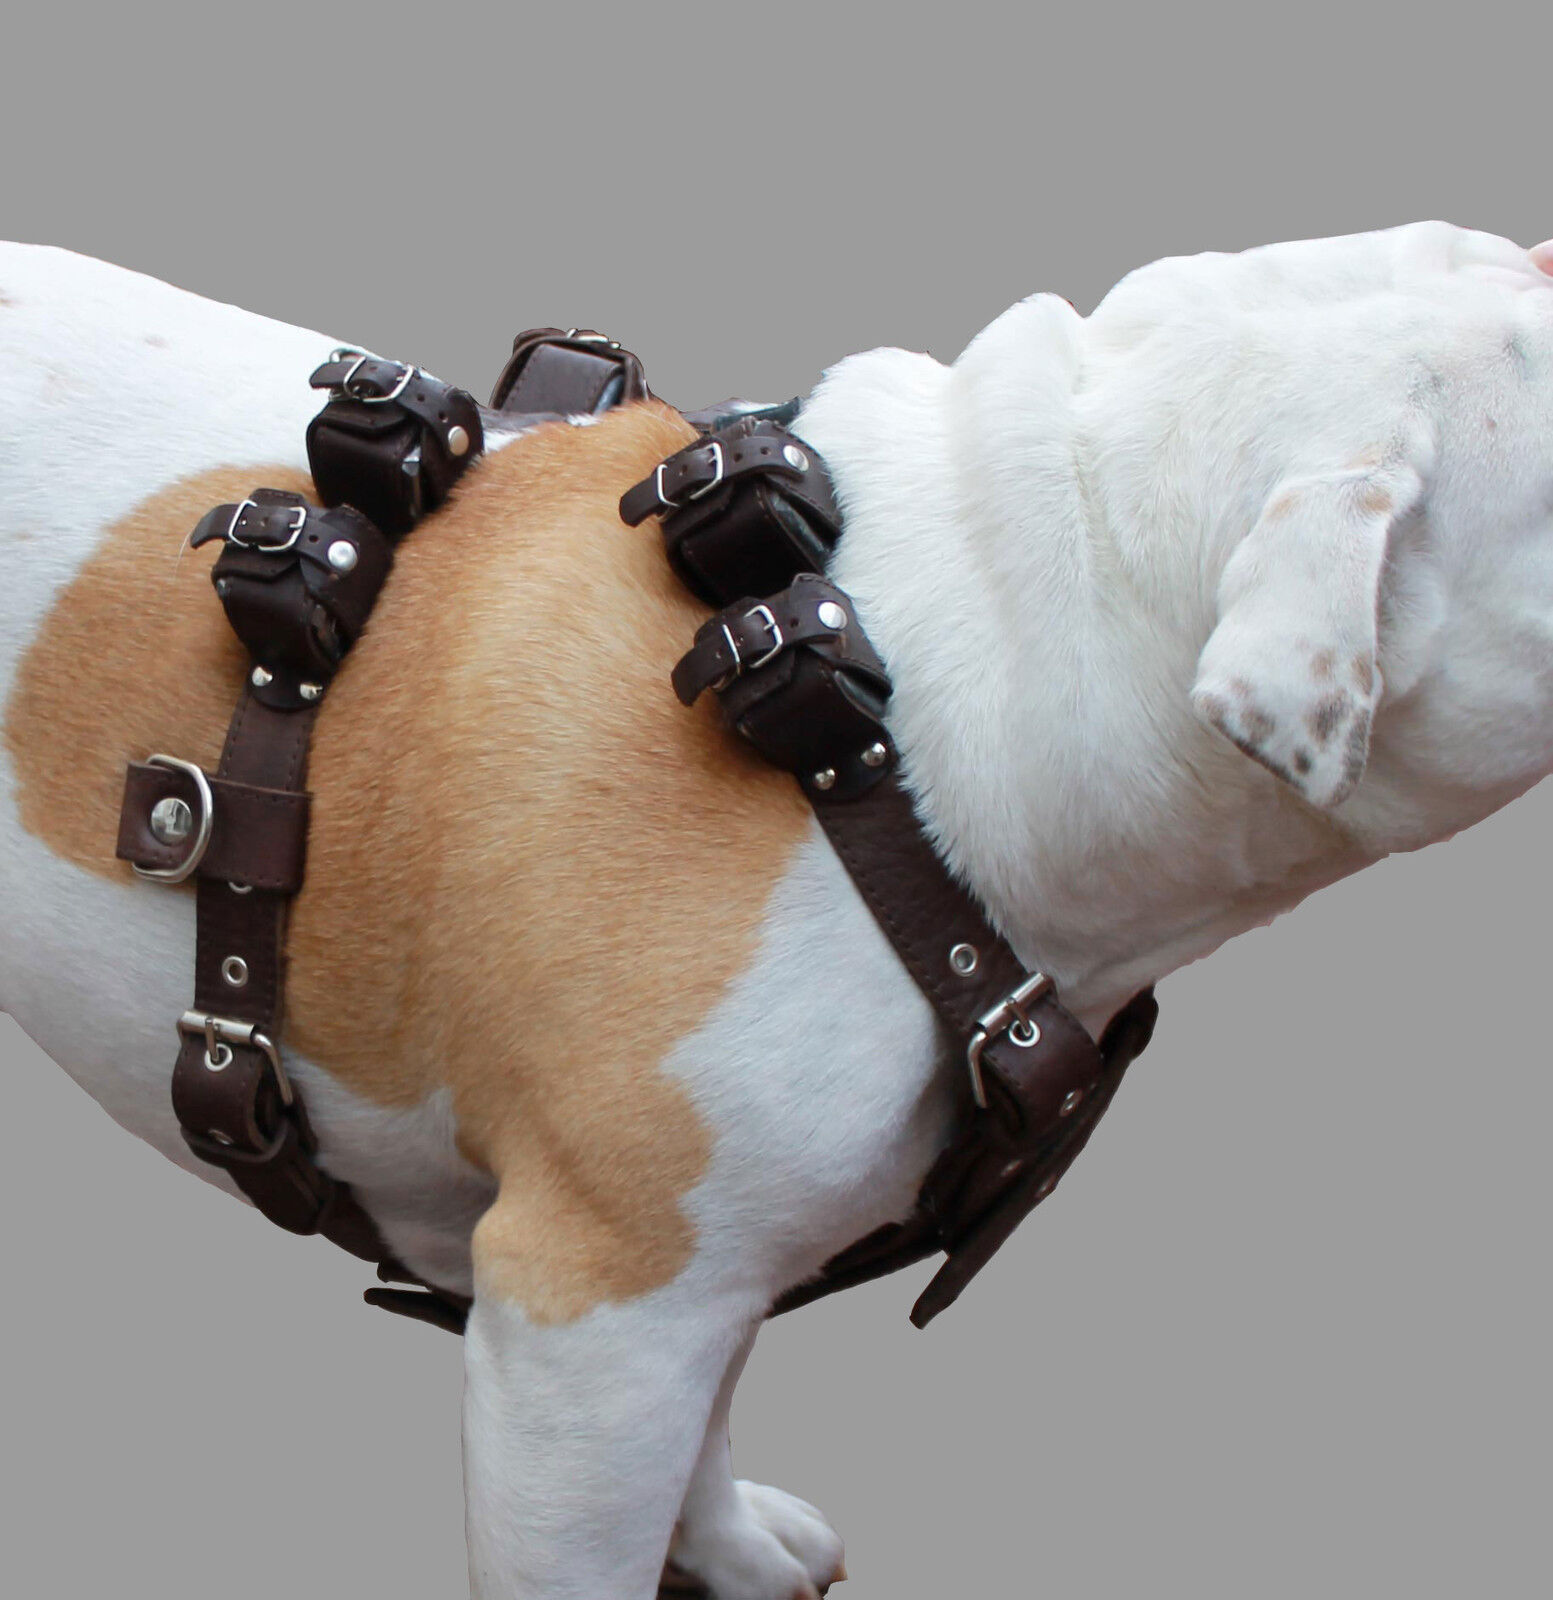 10 Lbs Real Leather Weighted Pulling Dog Harness Exercise Training 35 -44  Chest